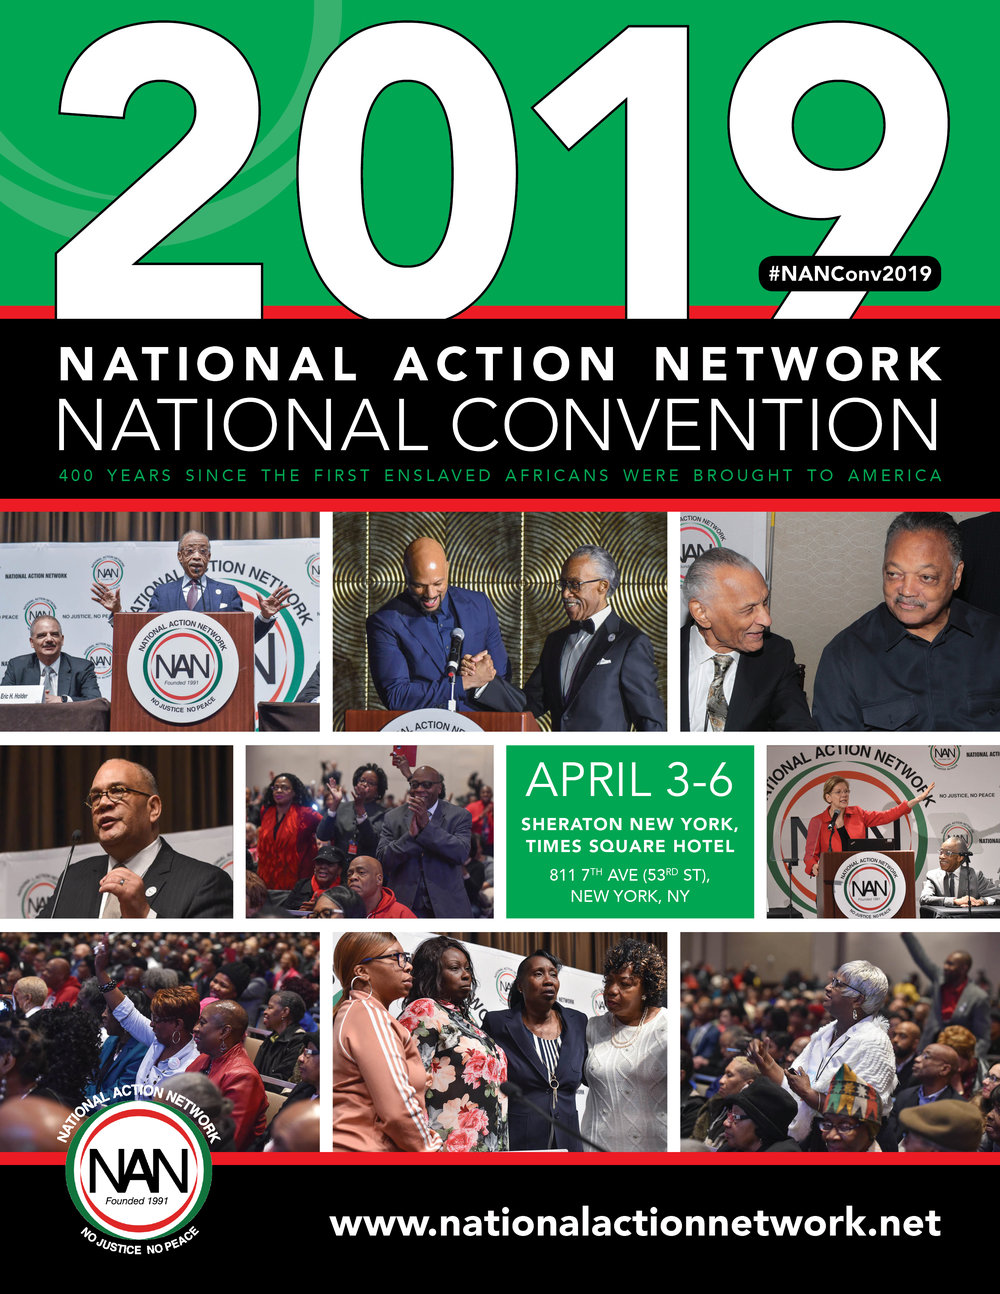 2019 National Action Network Convention Materials